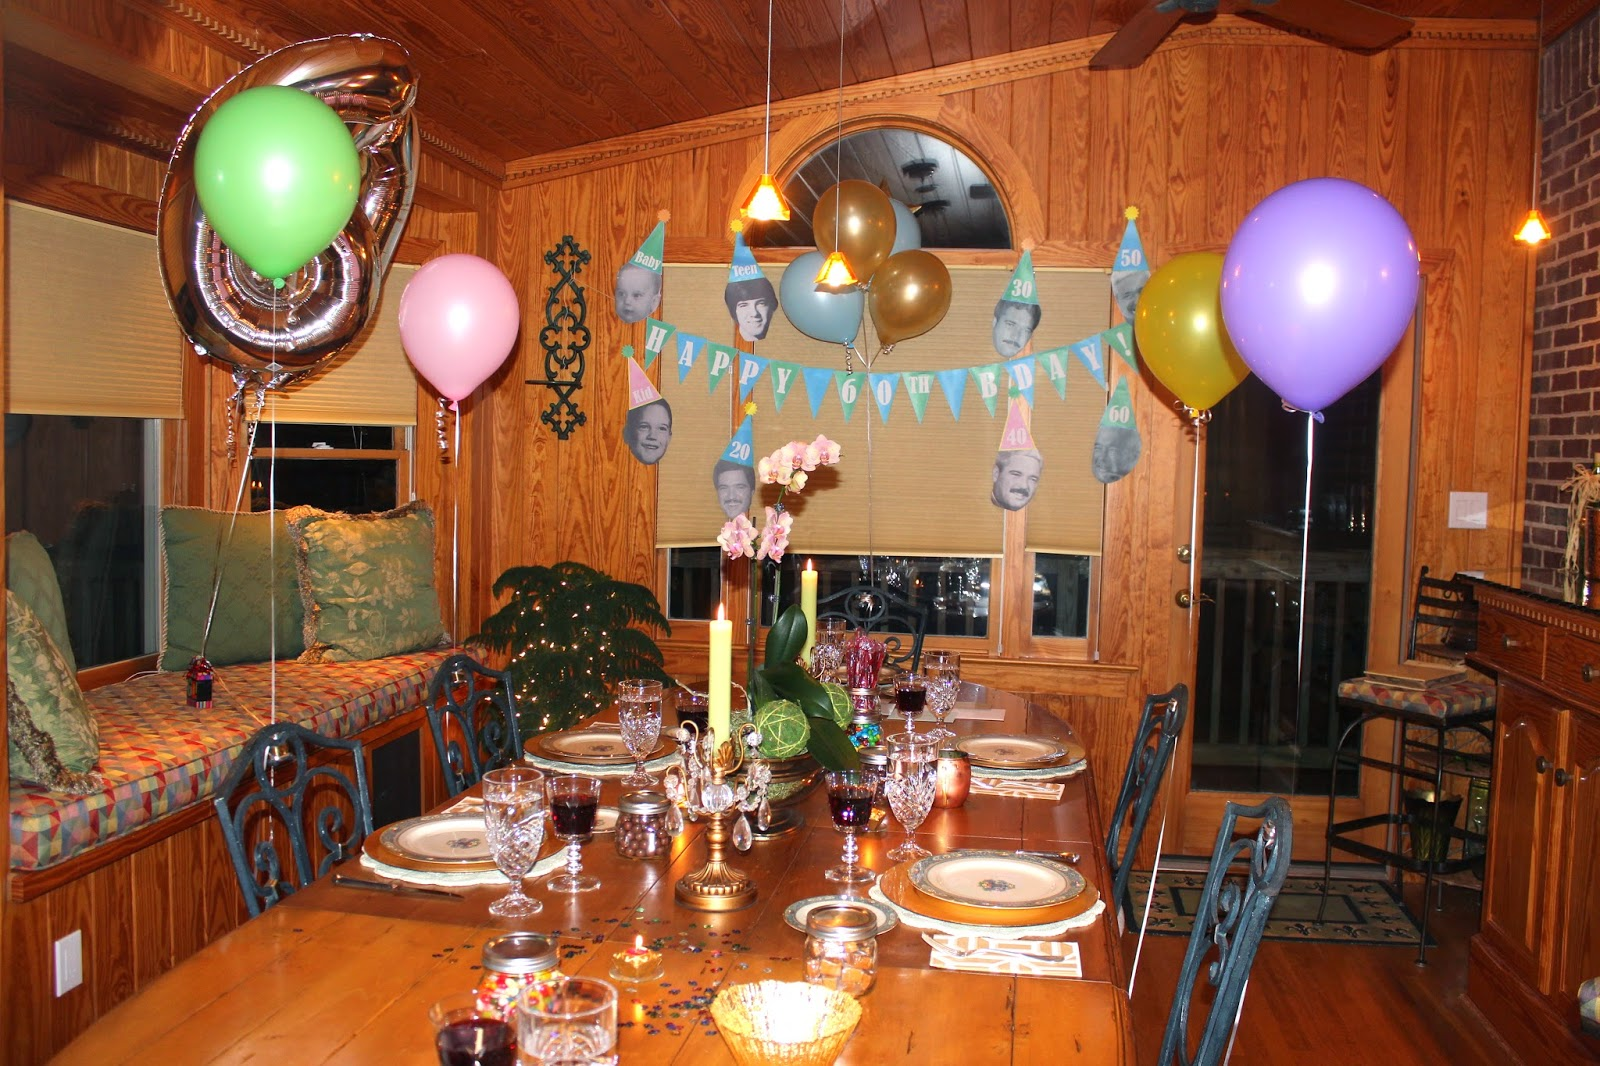 The Pink Elephant 60th birthday party ideas round 1